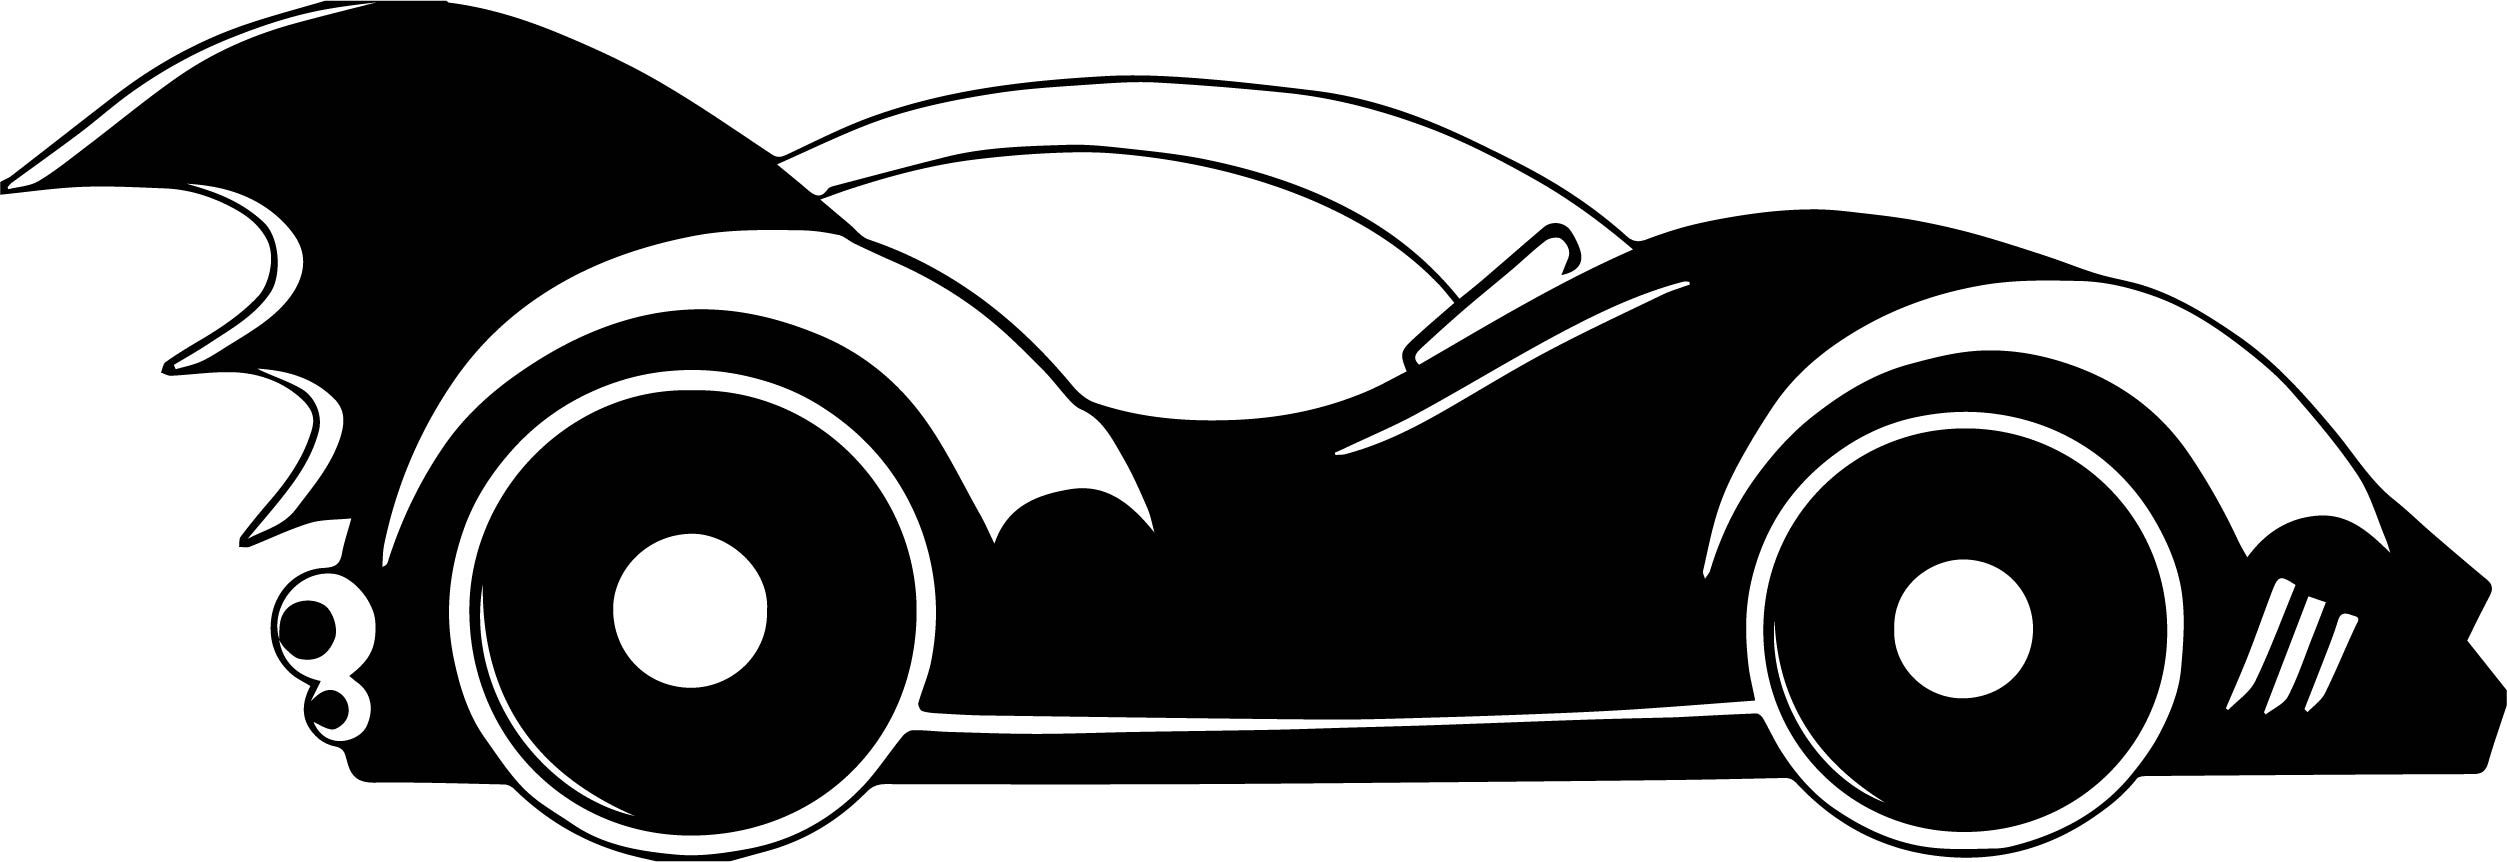 Cool Batman Cute Oh My Fiesta For Geeks Car Coloring Page Cars